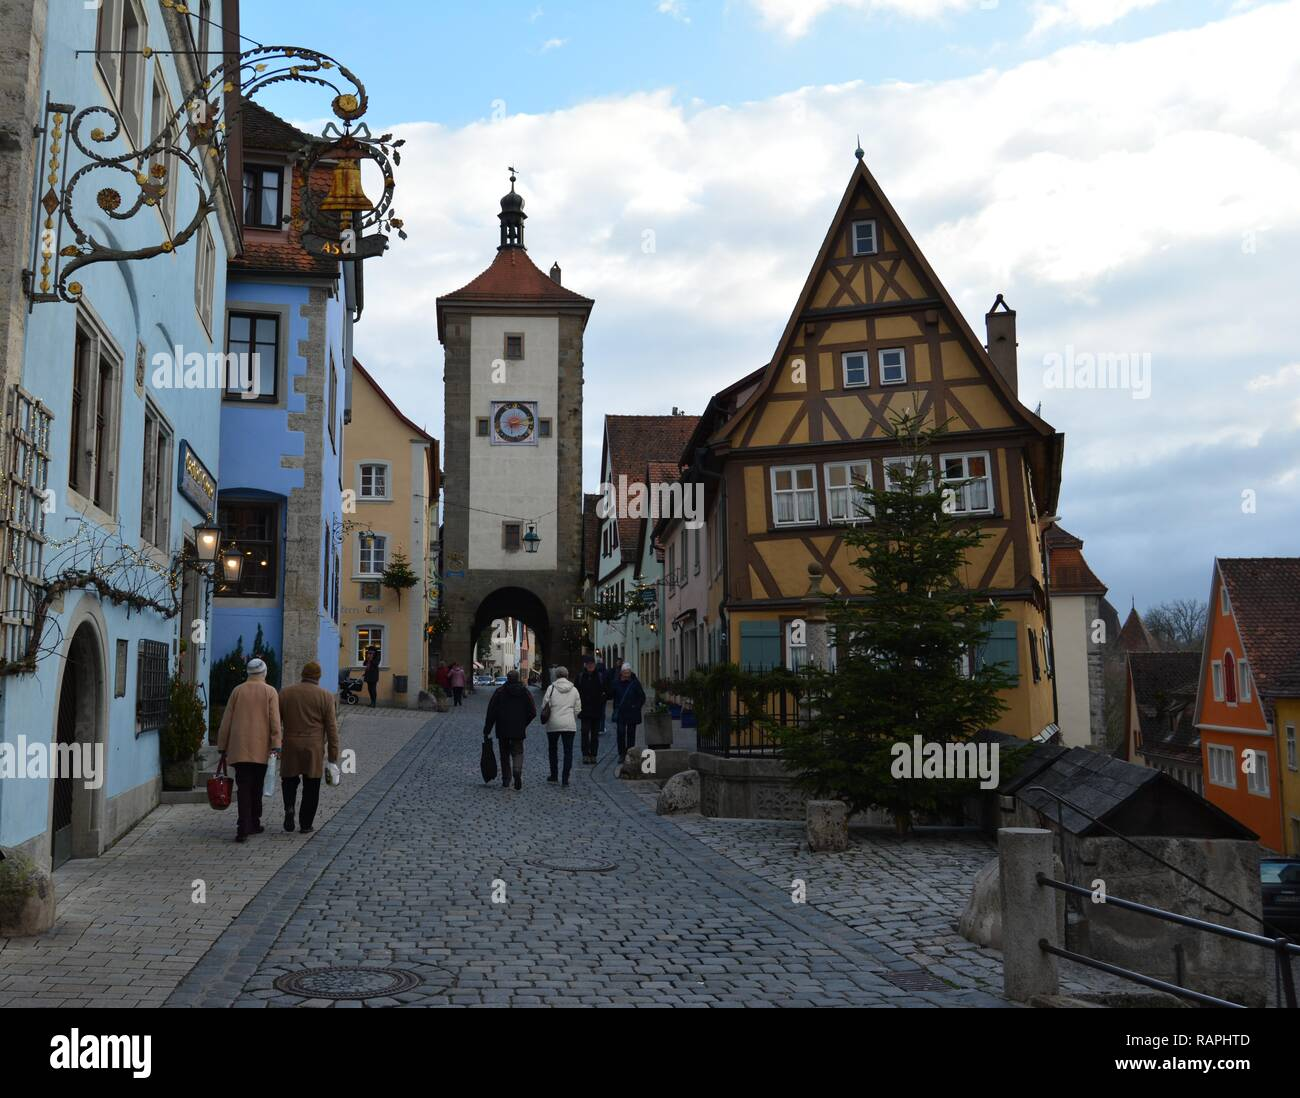 Famous Places In Germany Stock Photos & Famous Places In